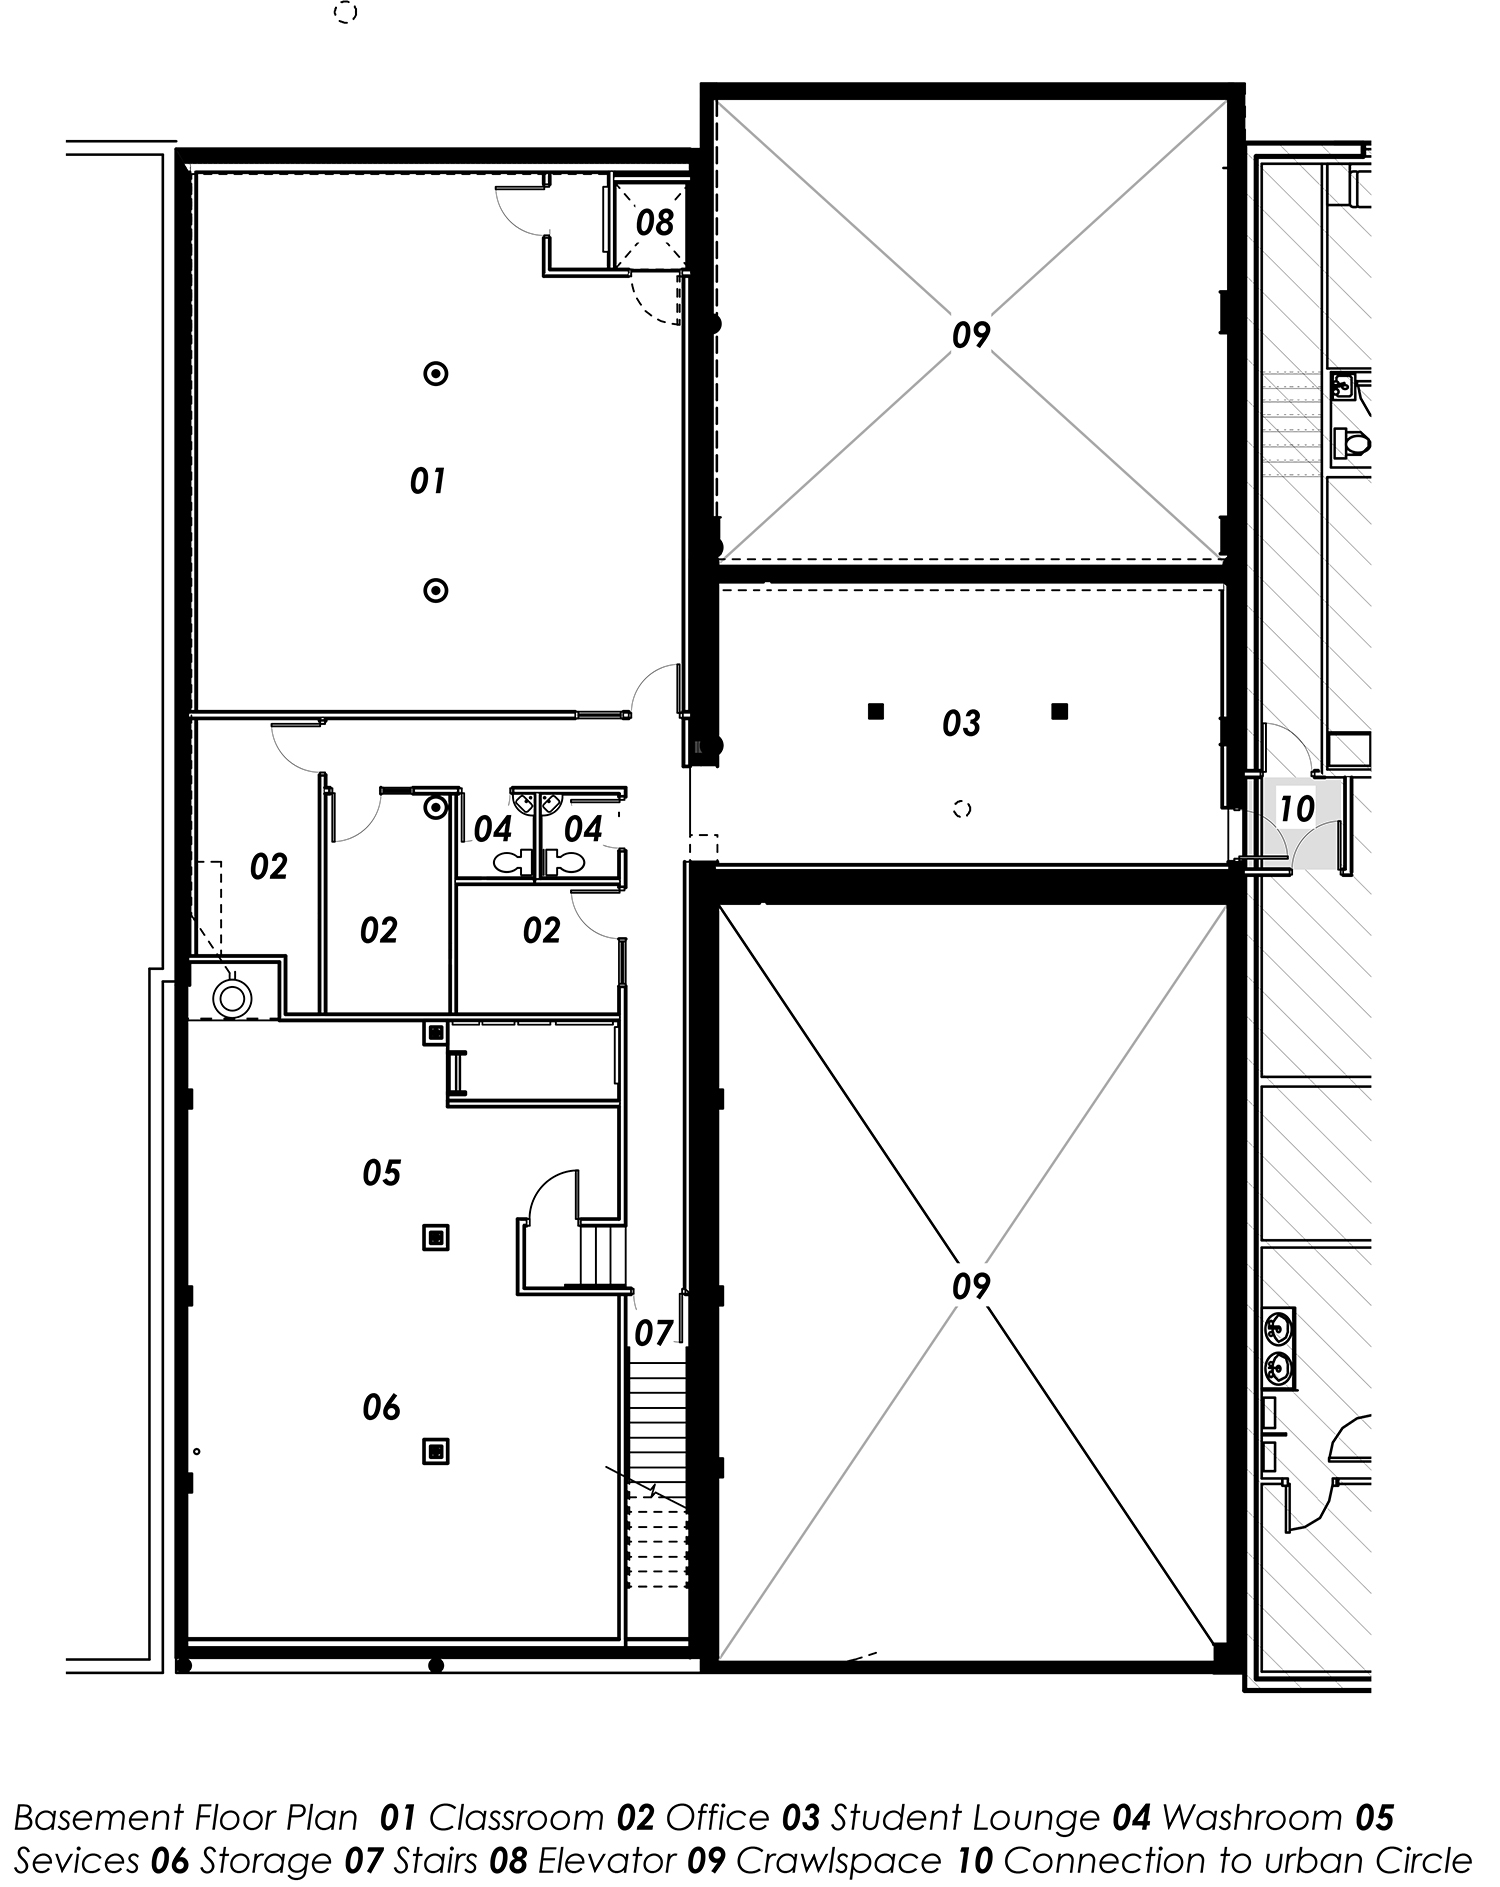 Makoonsag-Daycare-plans-basement.jpg